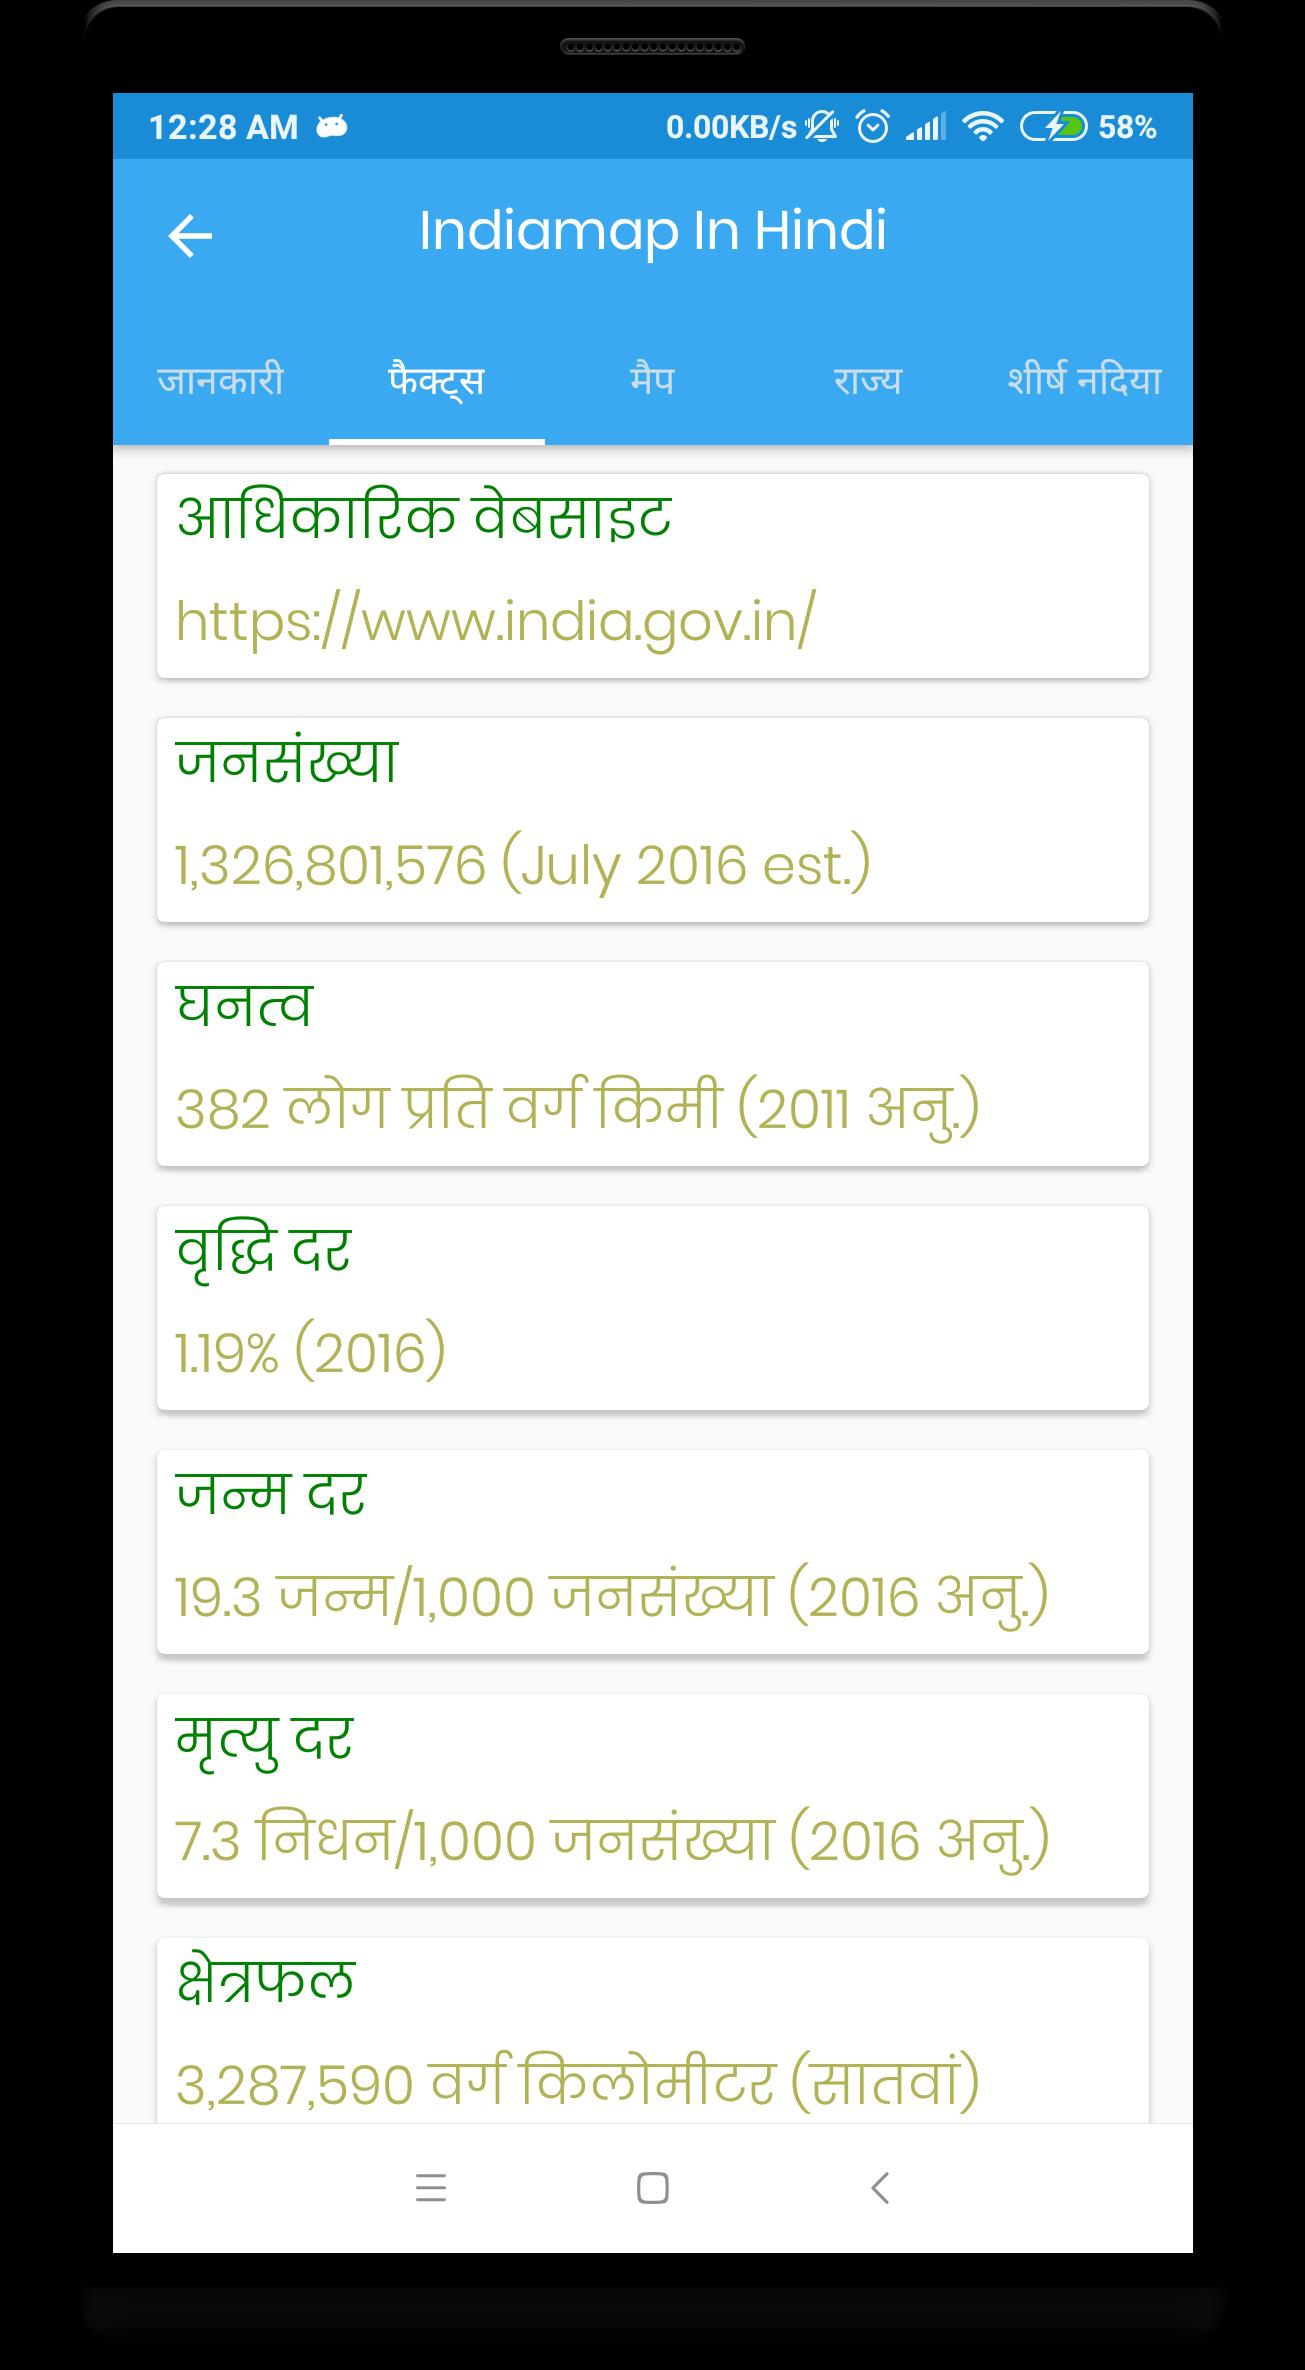 india map - in hindi with gk, tourism and facts for Android ... on india cities map, india map state names, india map hinduism, india map indo-gangetic plain, india map bangla, india map delhi, india map asia, india map in tamil, india map gujarat, india map nepal, india map art, india map geography, india map rajasthan, india map punjabi, india map history, india map maharashtra, india map urdu, india map states and rivers, india map english, india map mumbai,